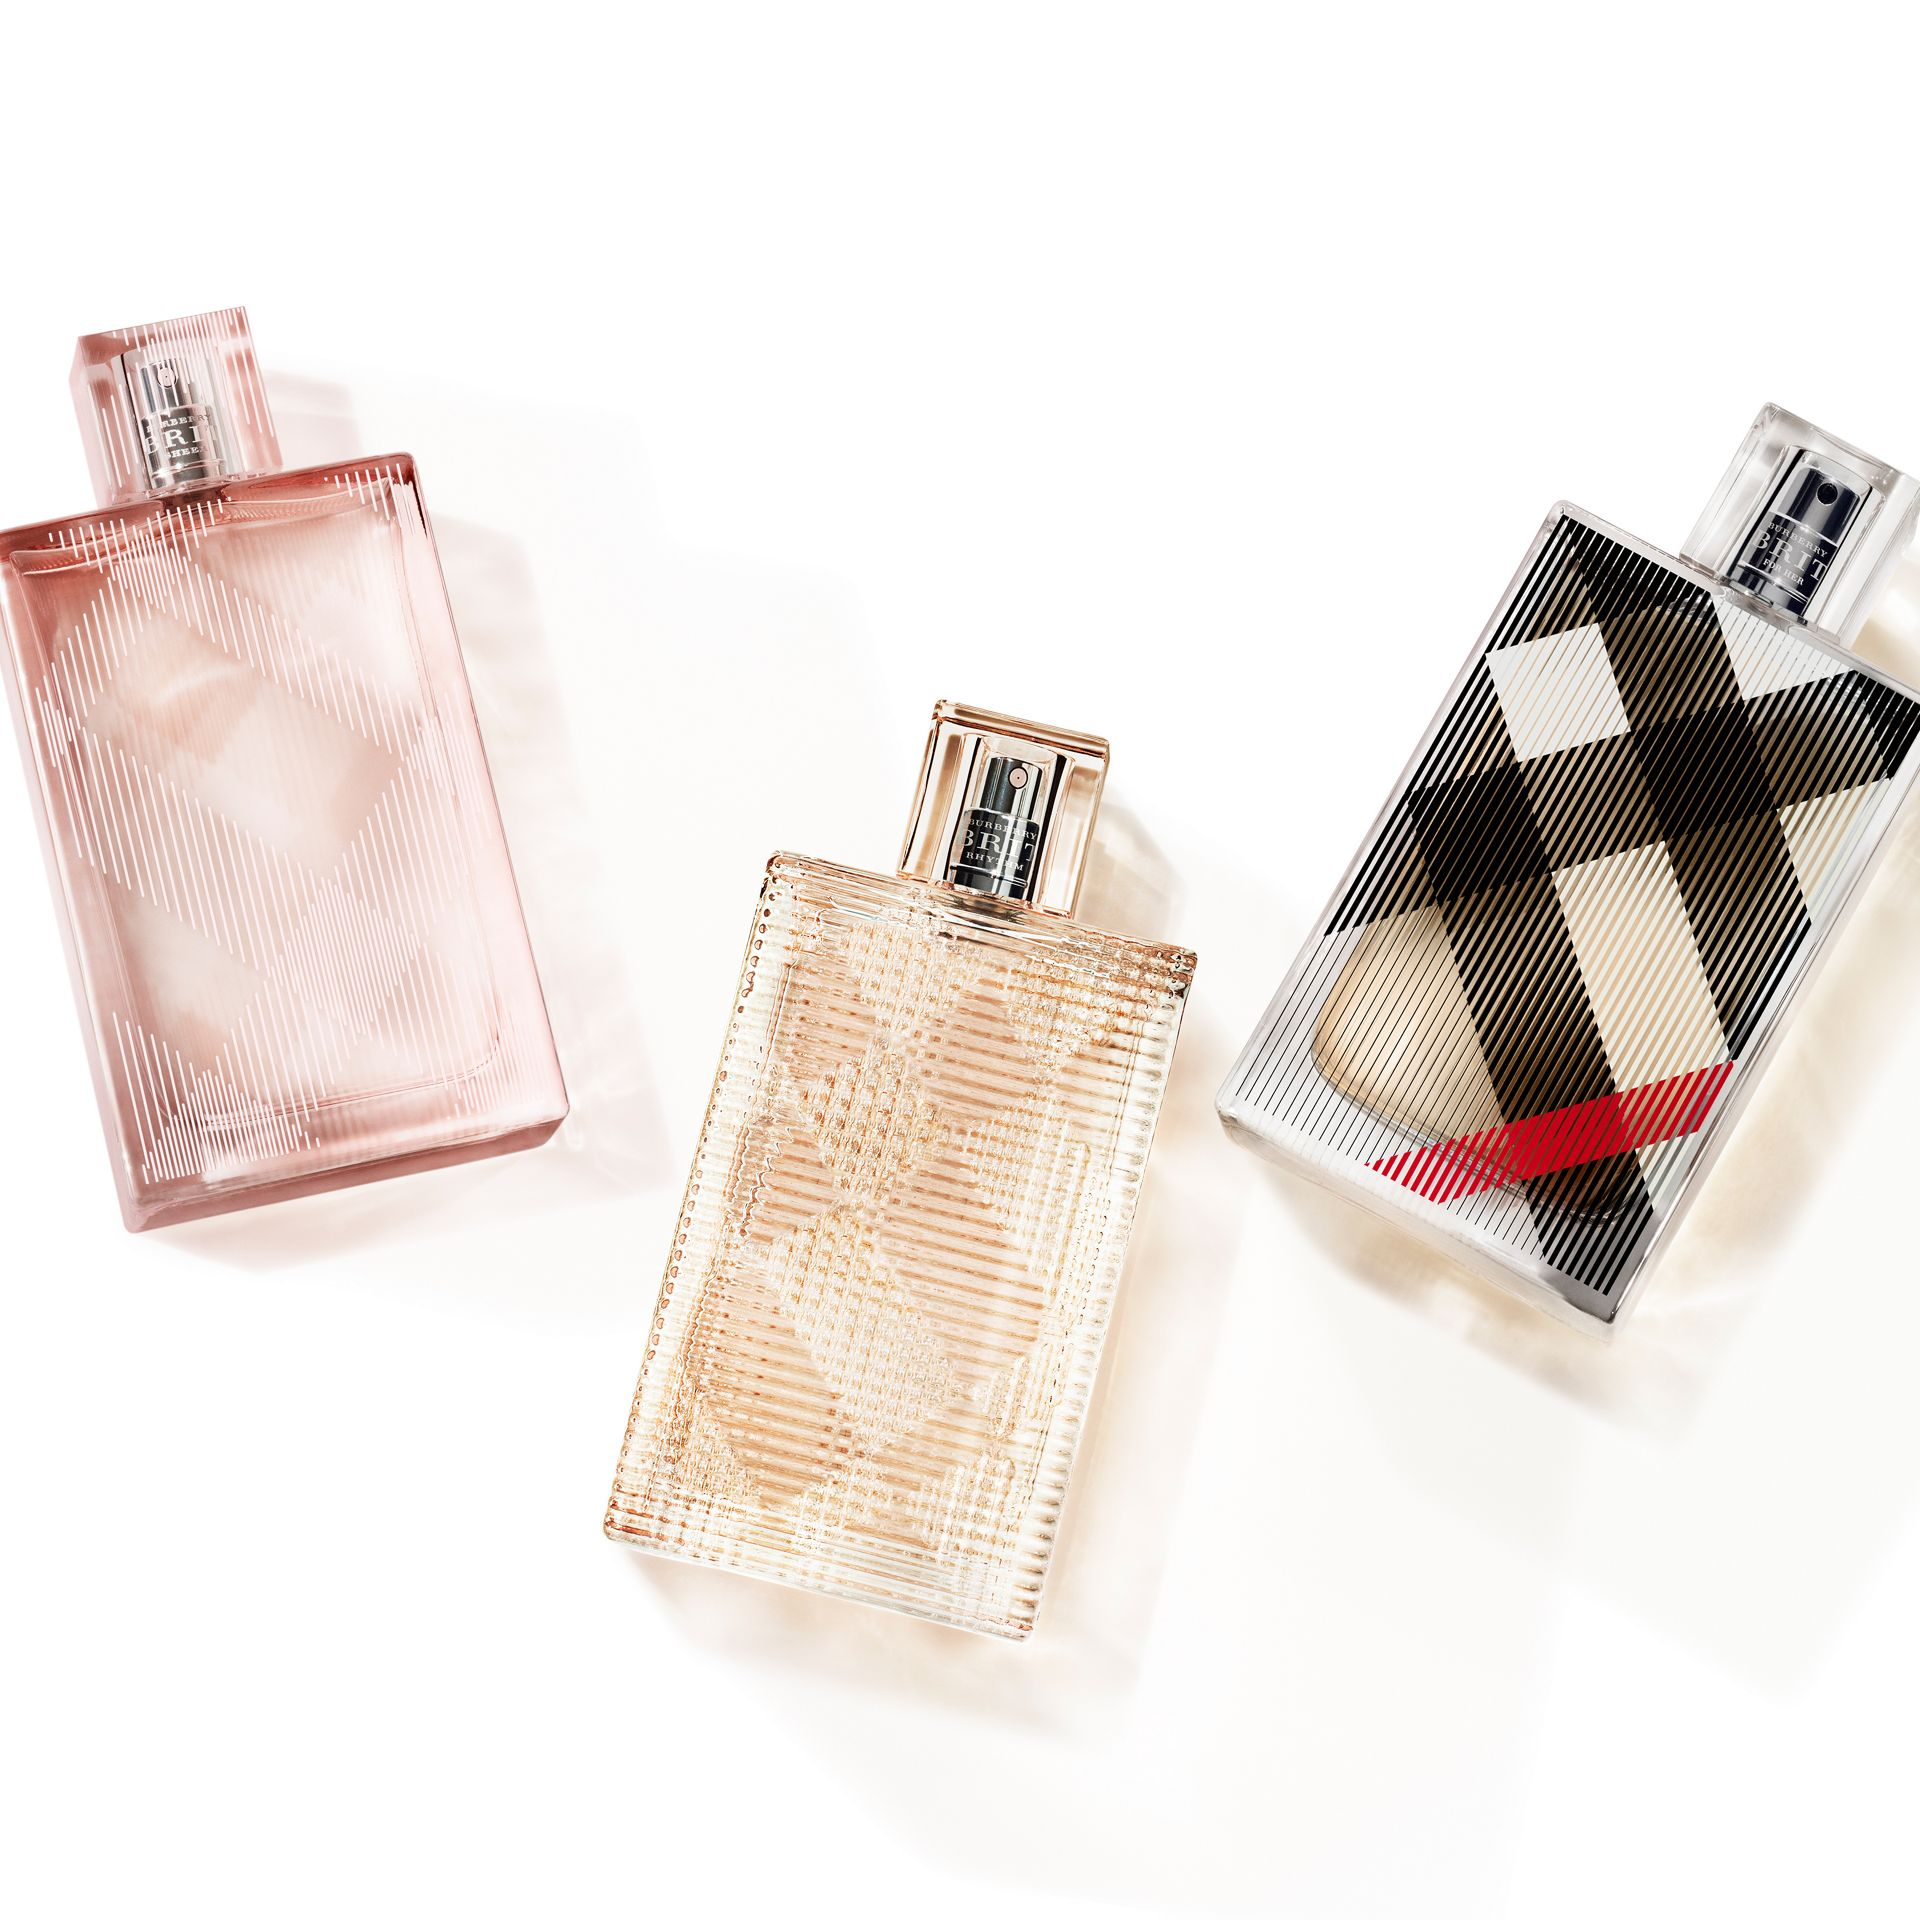 Eau de Parfum Burberry Brit for Her 50 ml - Femme | Burberry - photo de la galerie 3